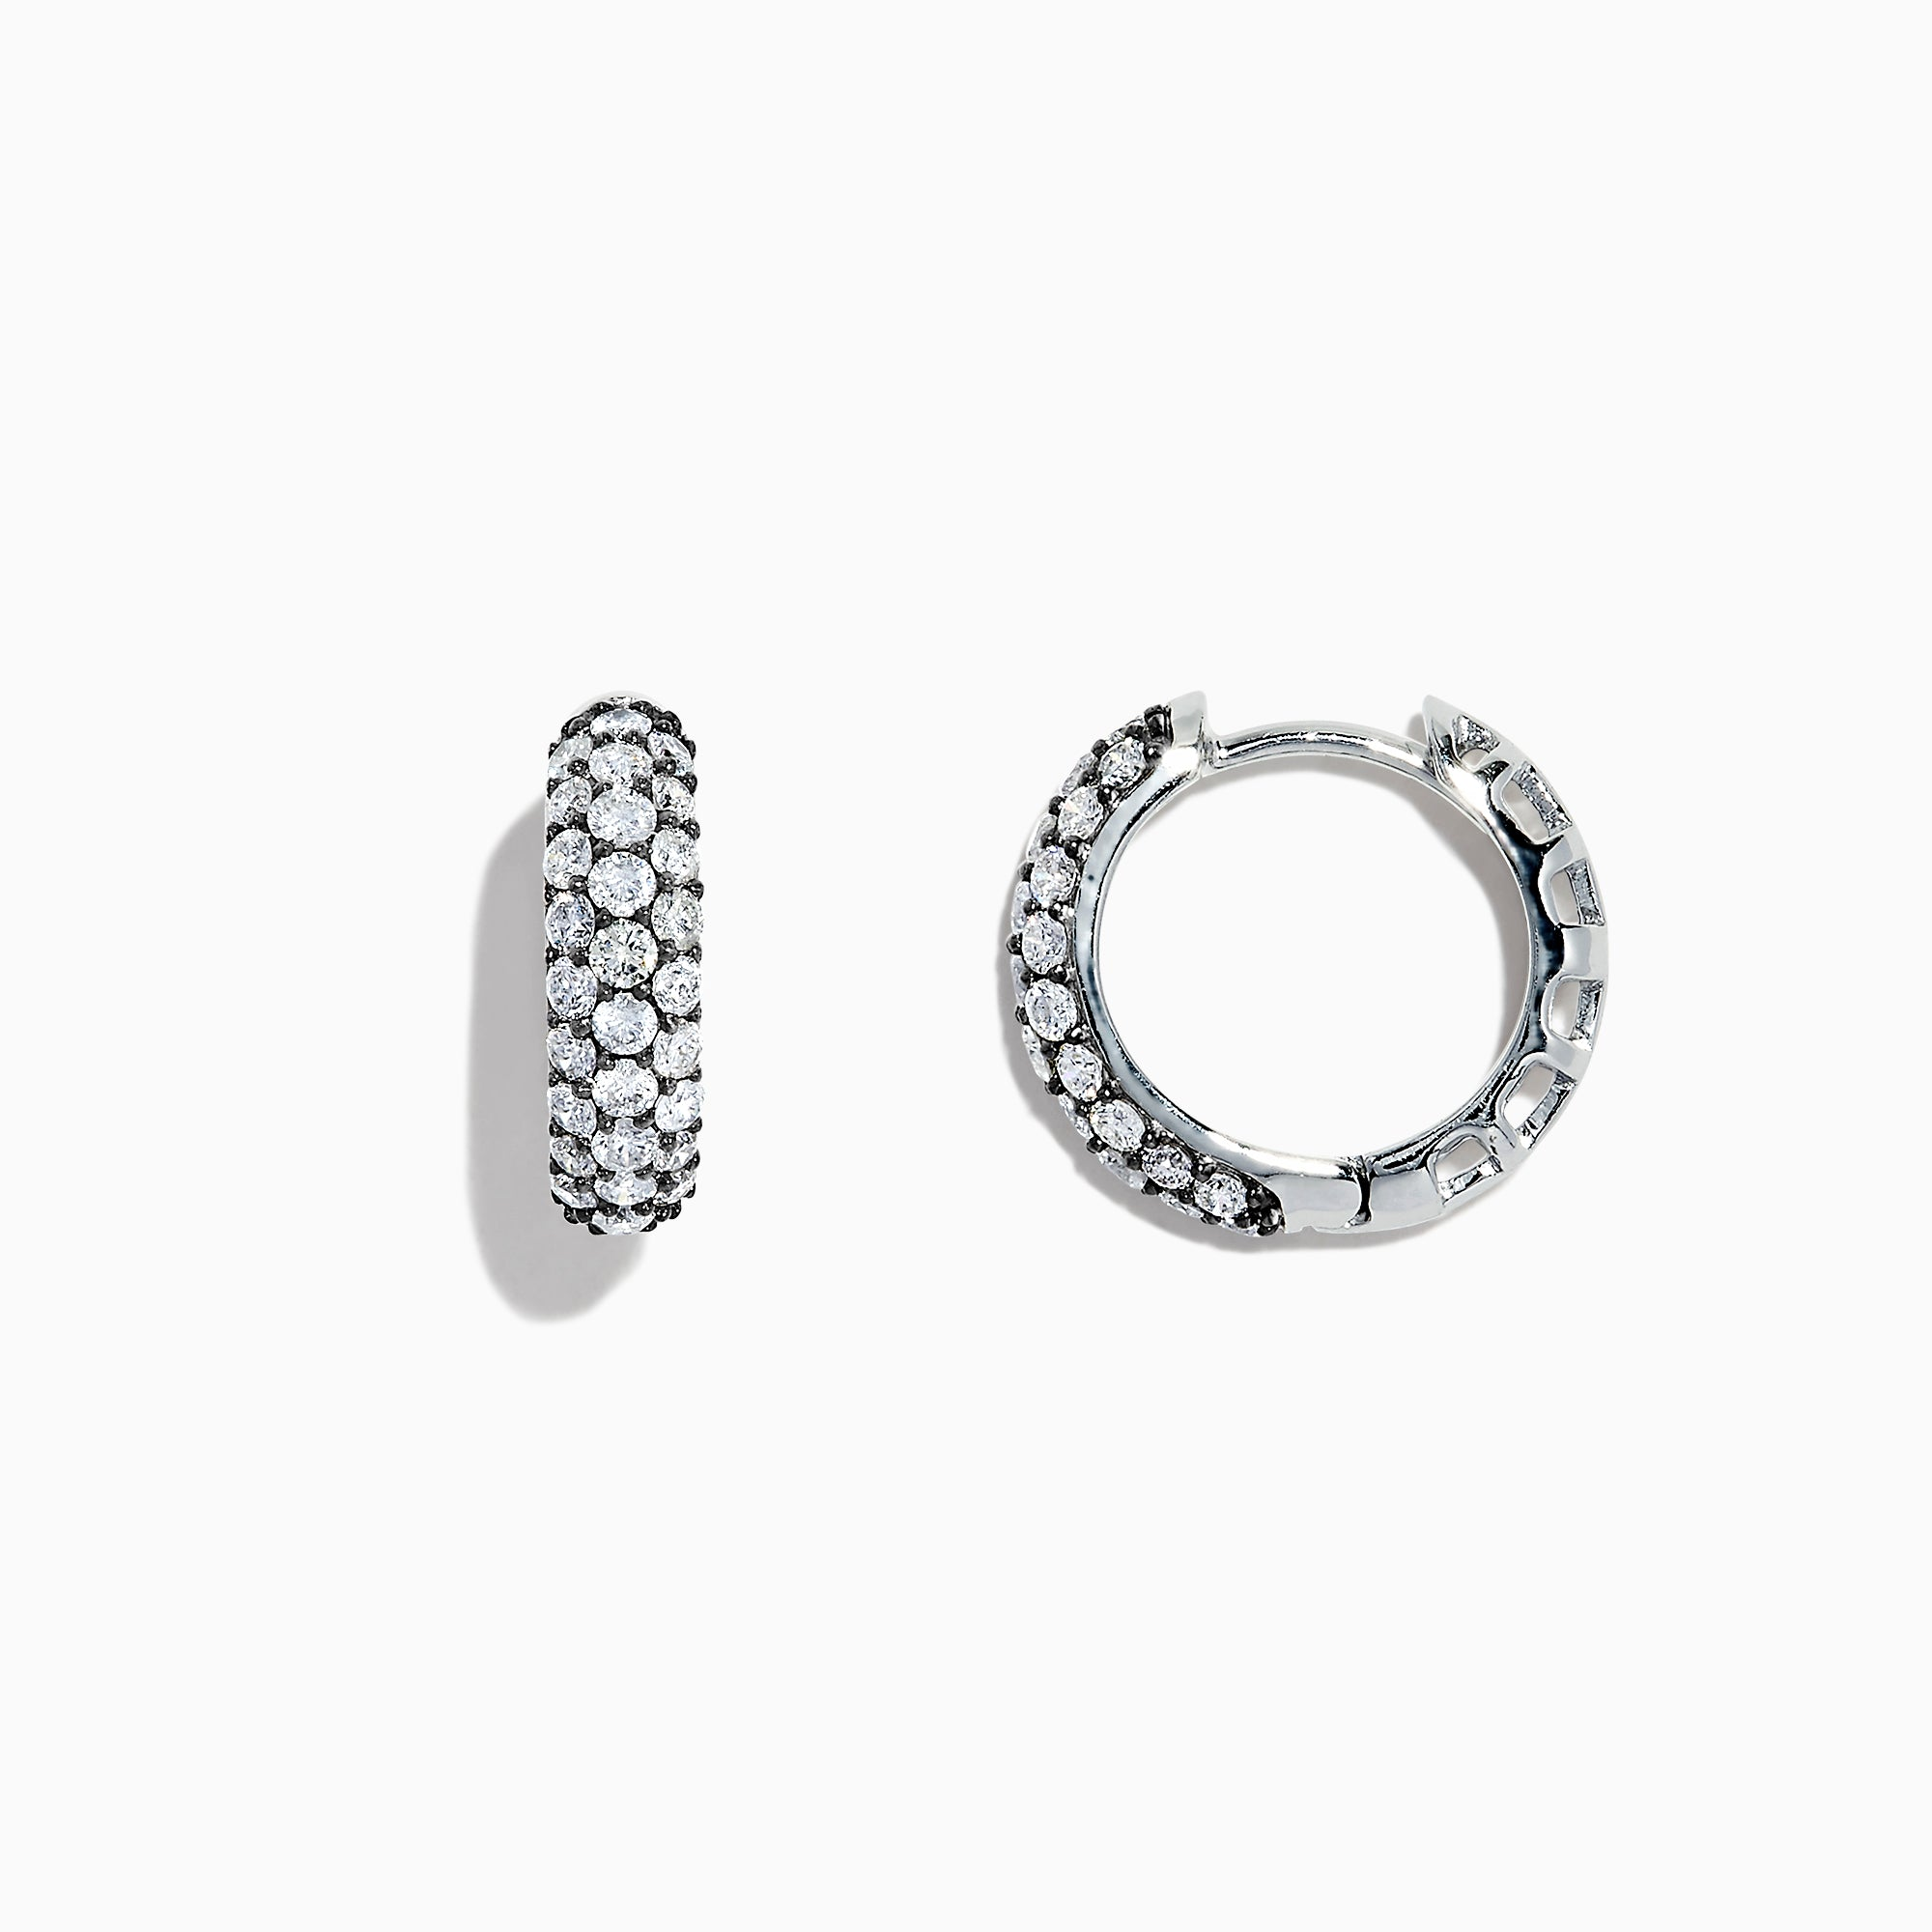 Effy 14K White Gold Diamond Huggie Hoop Earrings, 1.00 TCW